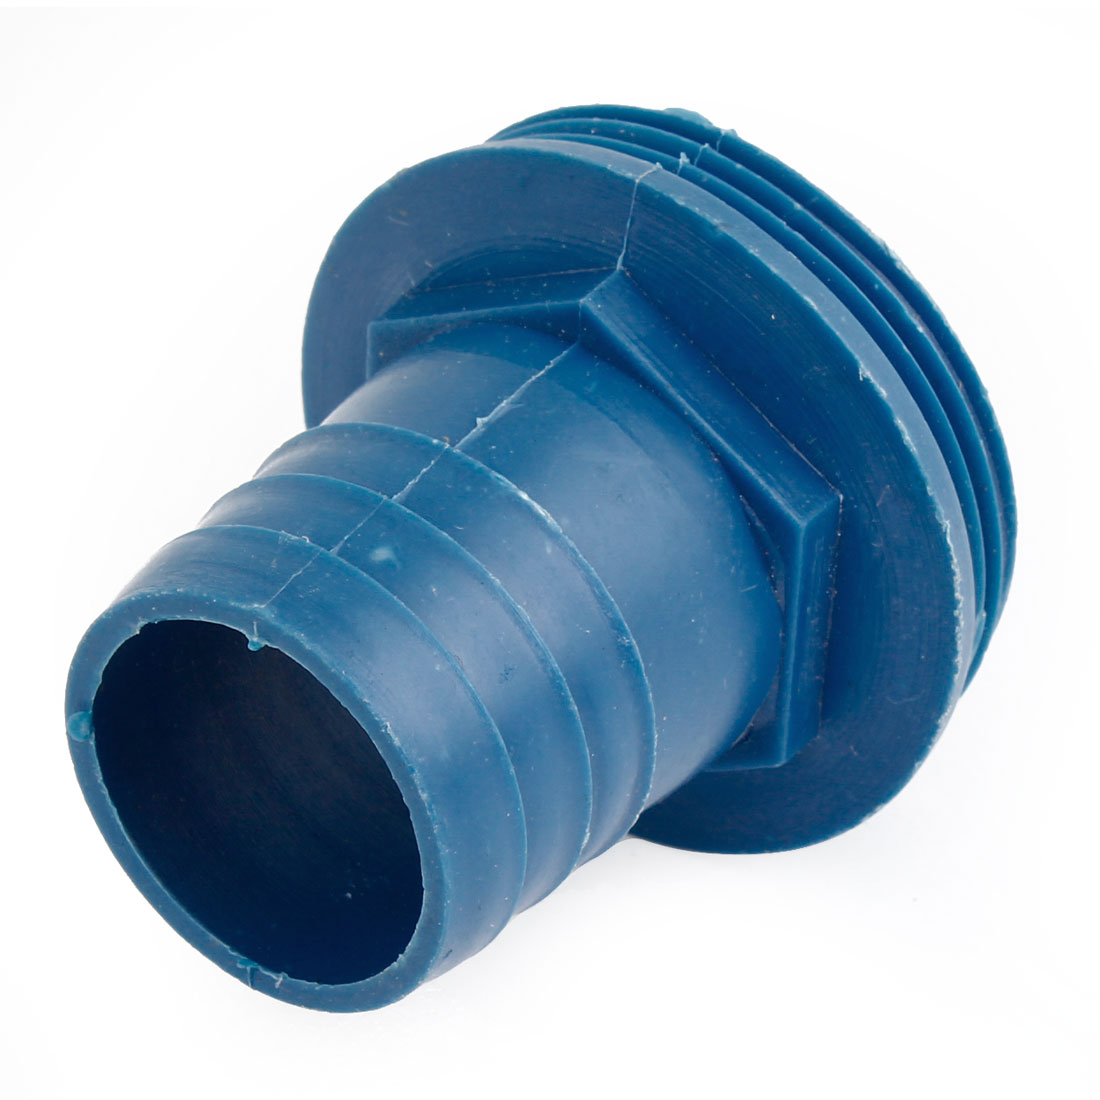 Blue 36mm Dia Water Pump Hose Barb to 55mm Male Thread Coupling Adaptor Fittings